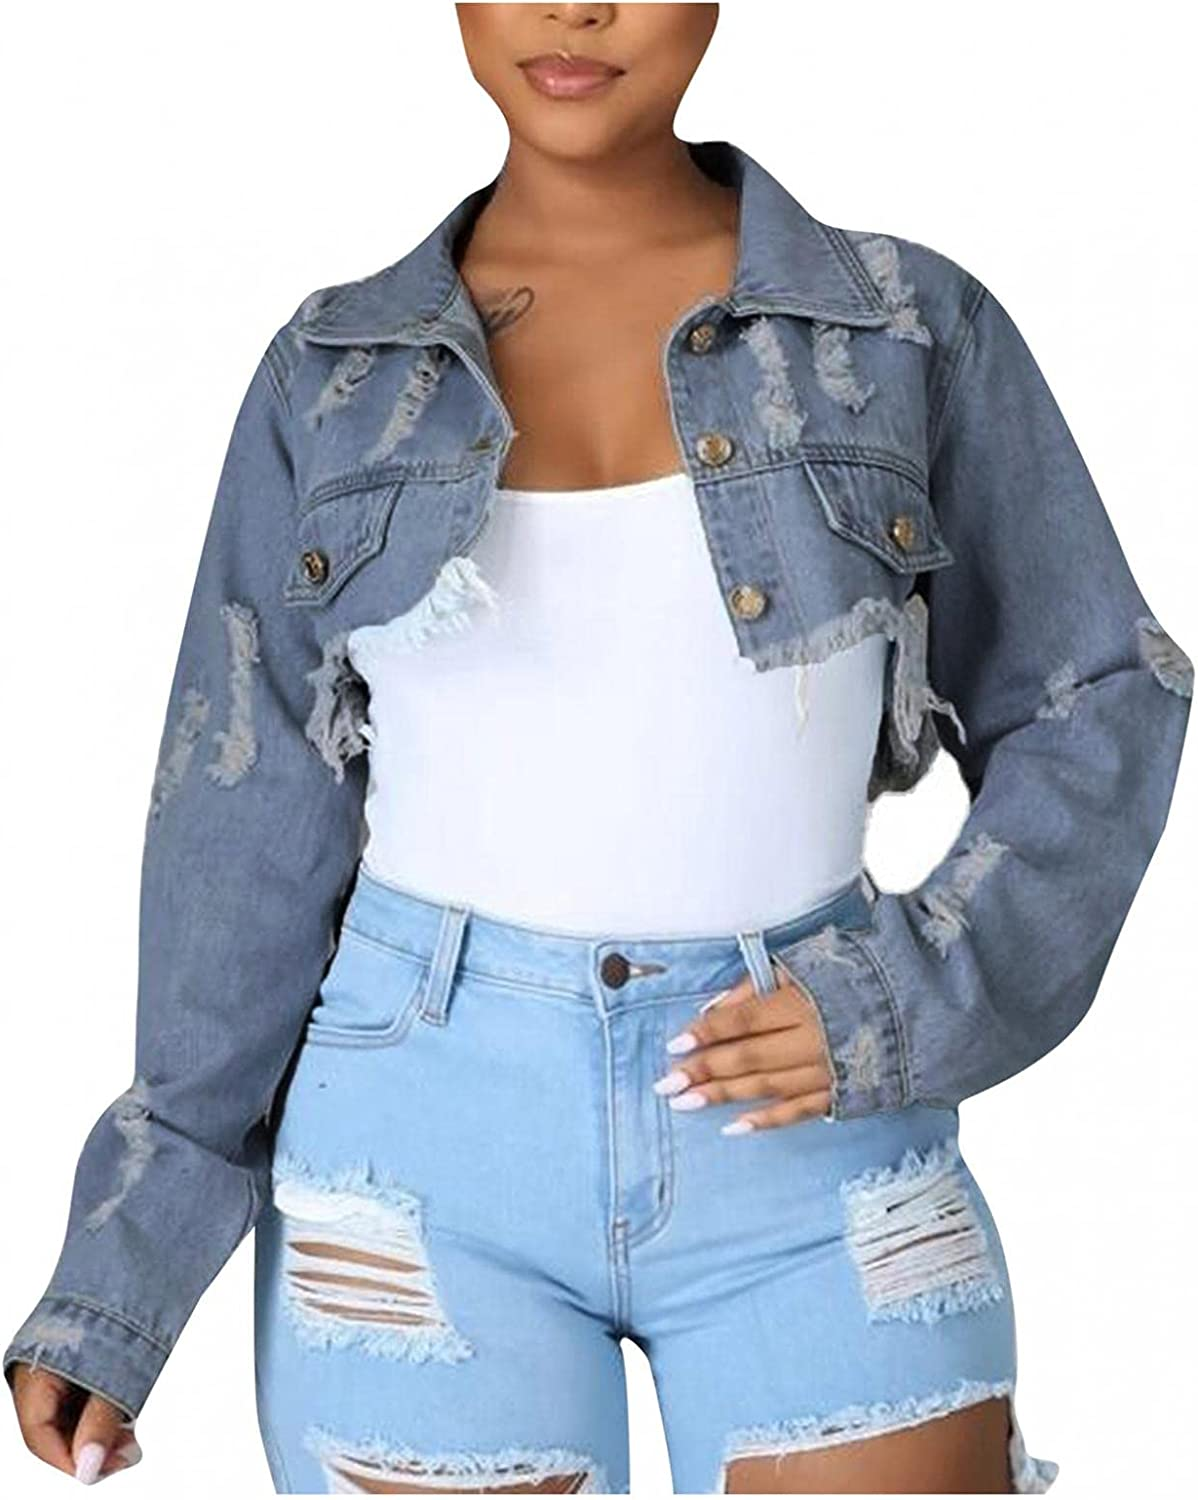 Kcocoo Denim Jacket for Women Long Sleeve Classic Loose Jean Trucker Jacket Ripped Distressed Casual Button Down Croped Coat